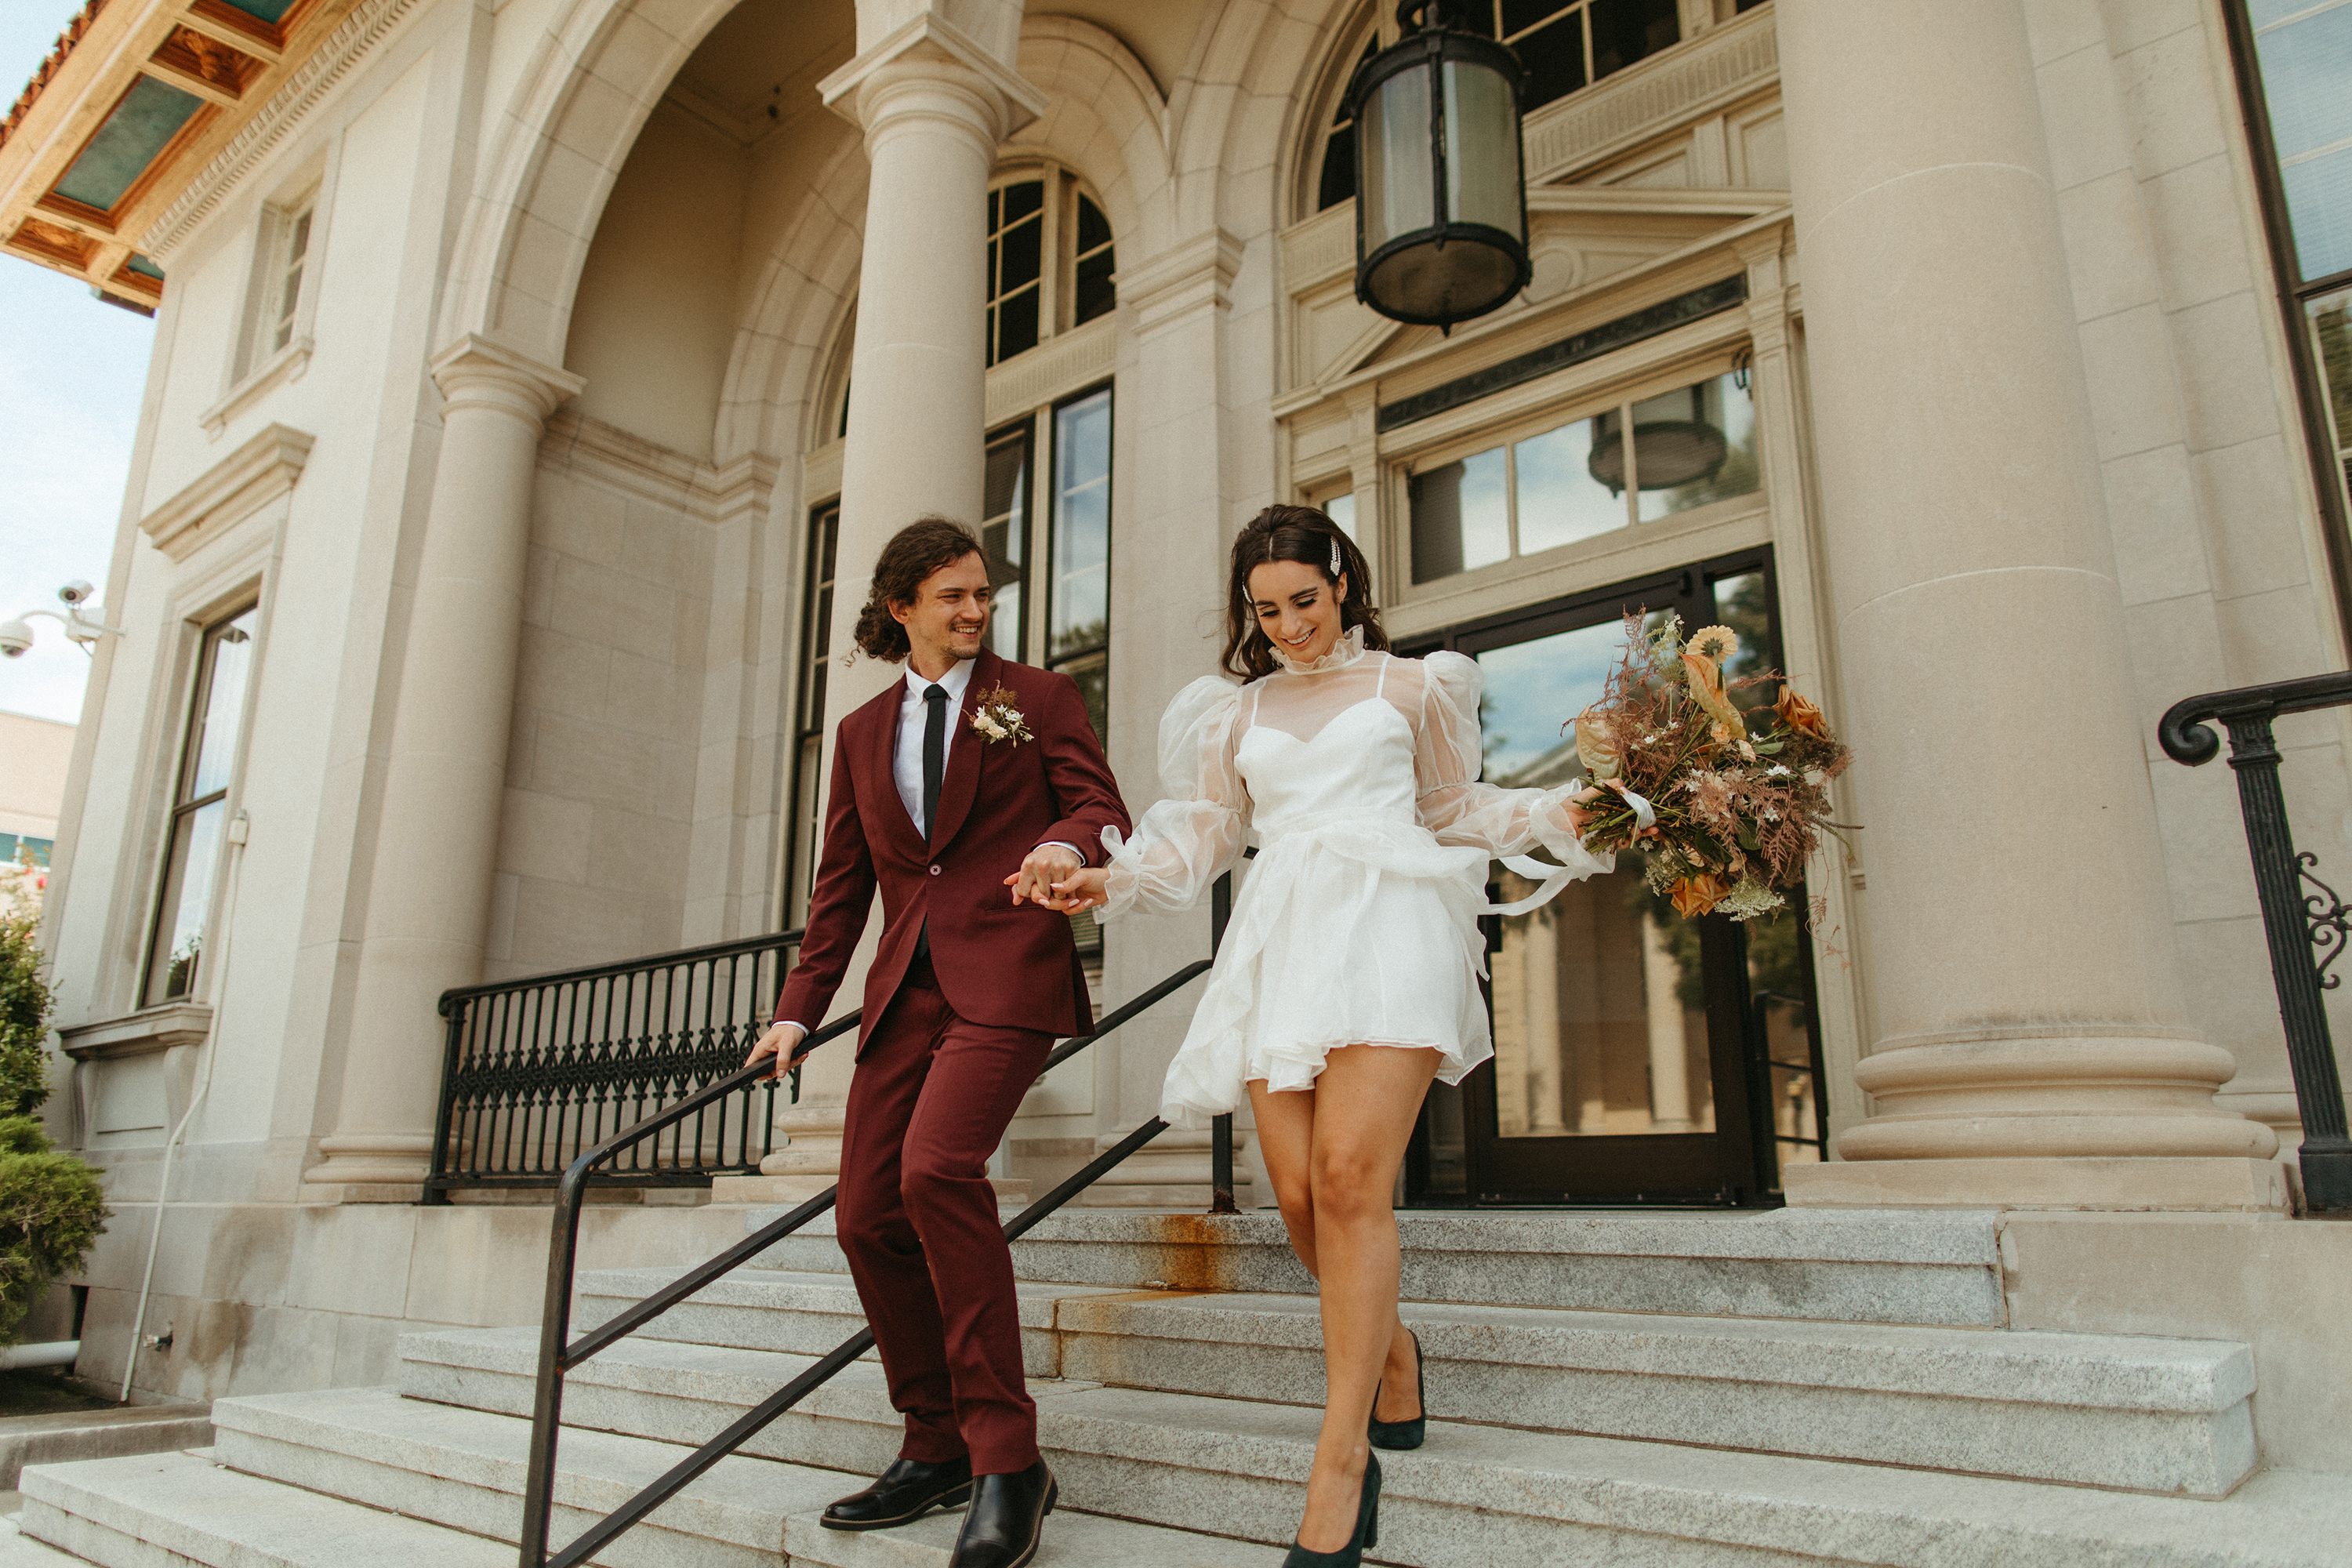 newlyweds exciting the courthouse what to wear to a courthouse wedding short dress